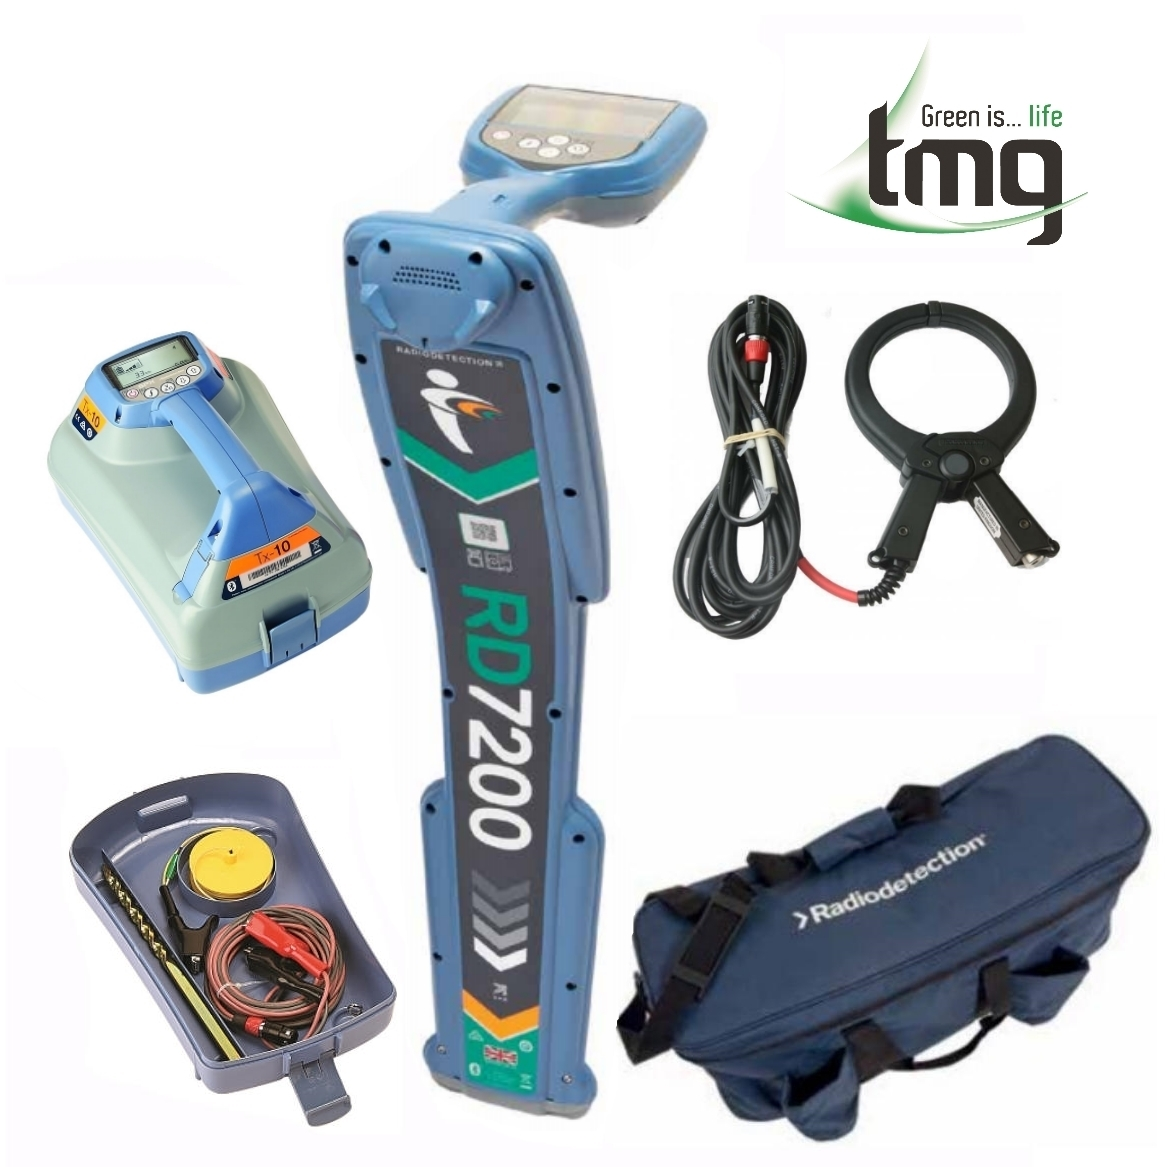 Radiodetection RD7200 Precision Cable and Pipe Locator